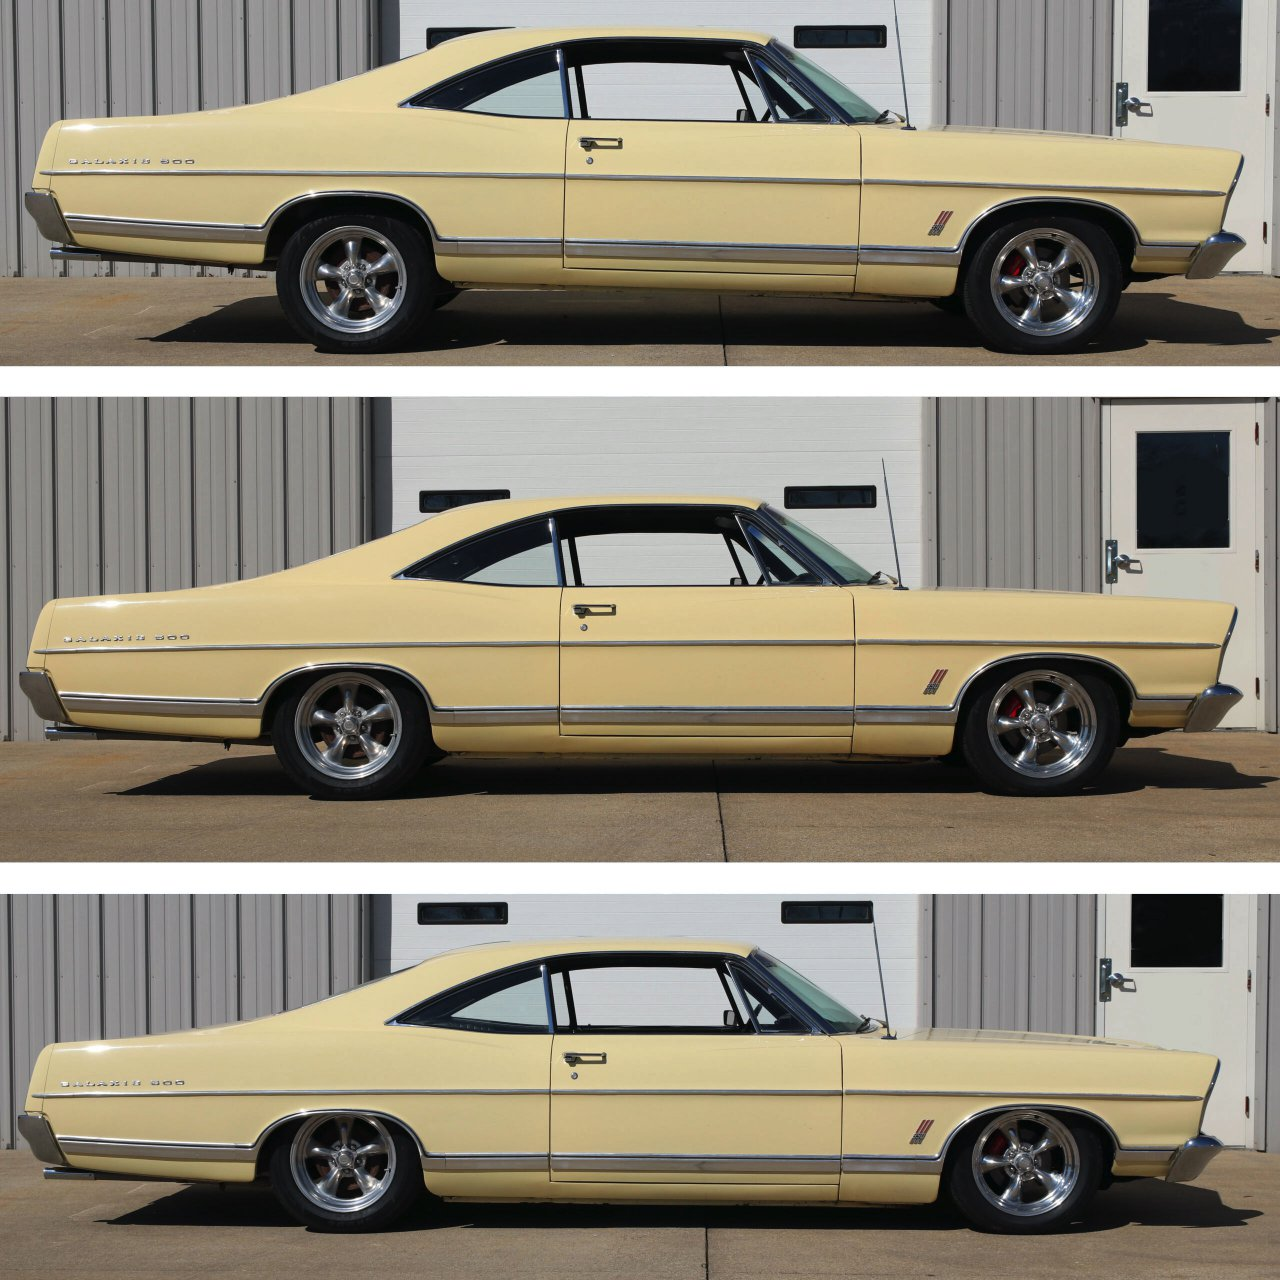 Galaxie, Ridetech launches air suspension for classic Ford Galaxies, ClassicCars.com Journal